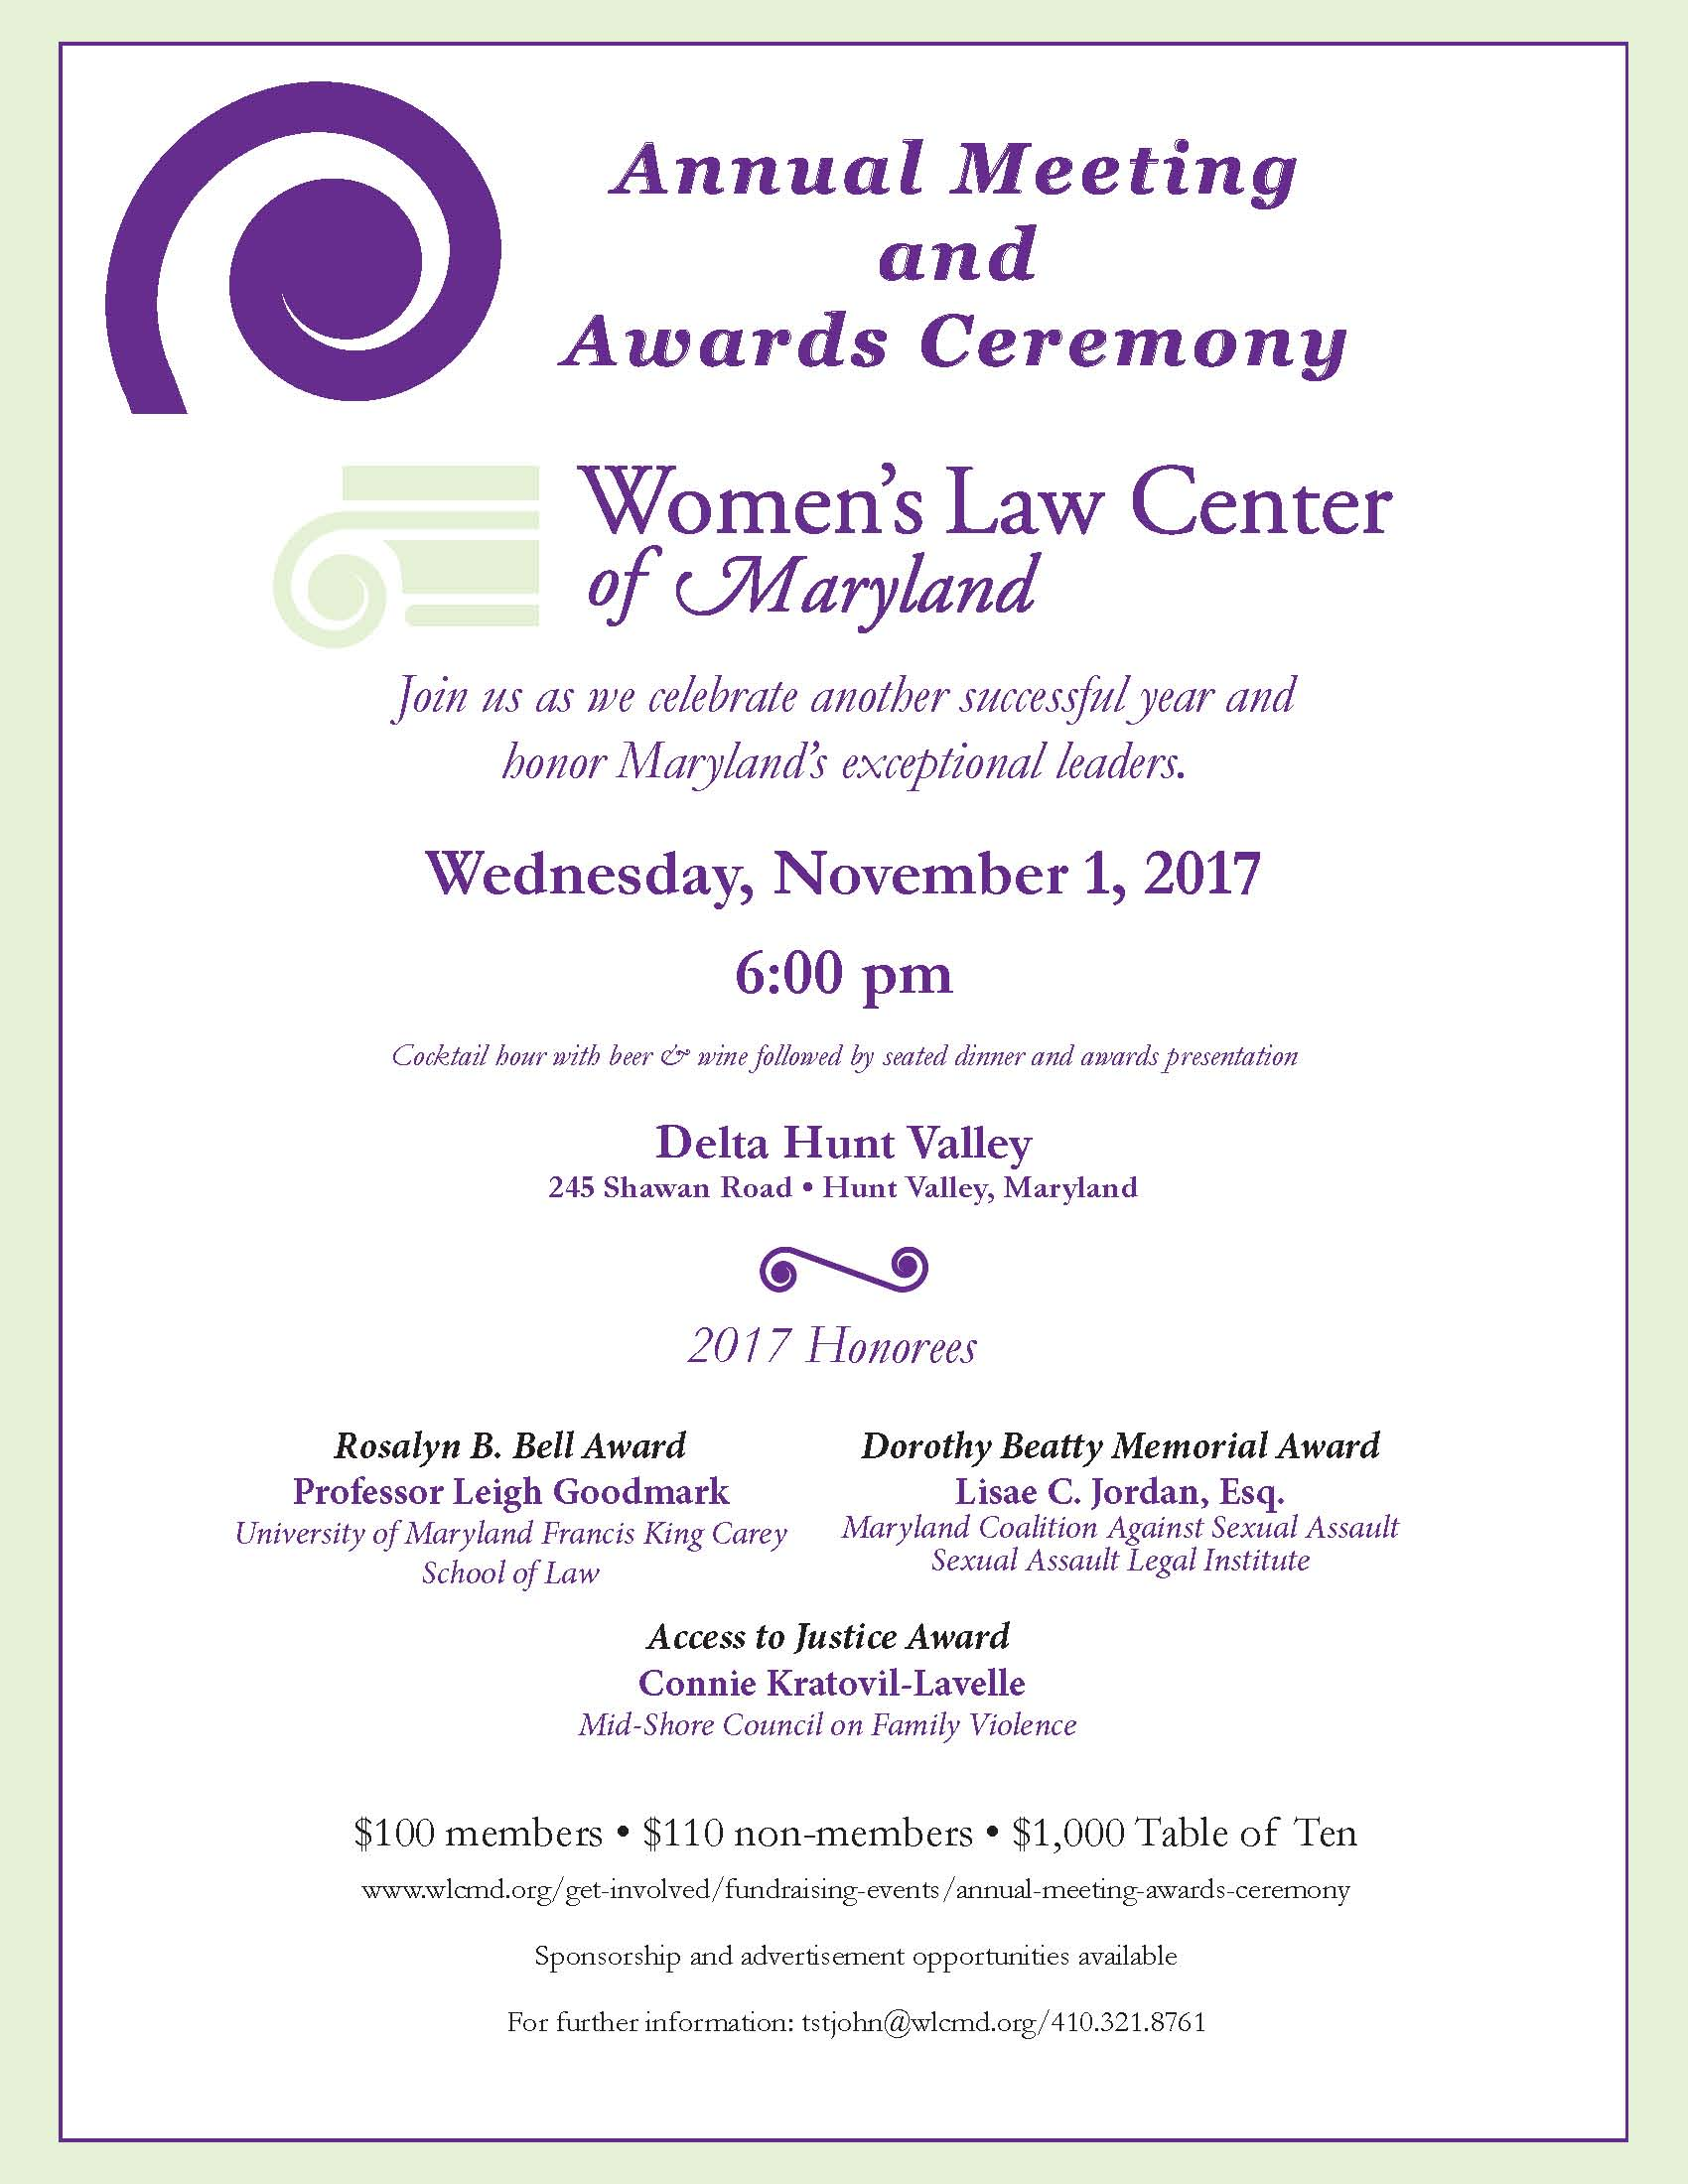 Women's Law Center of Maryland Annual Meeting and Award Ceremony